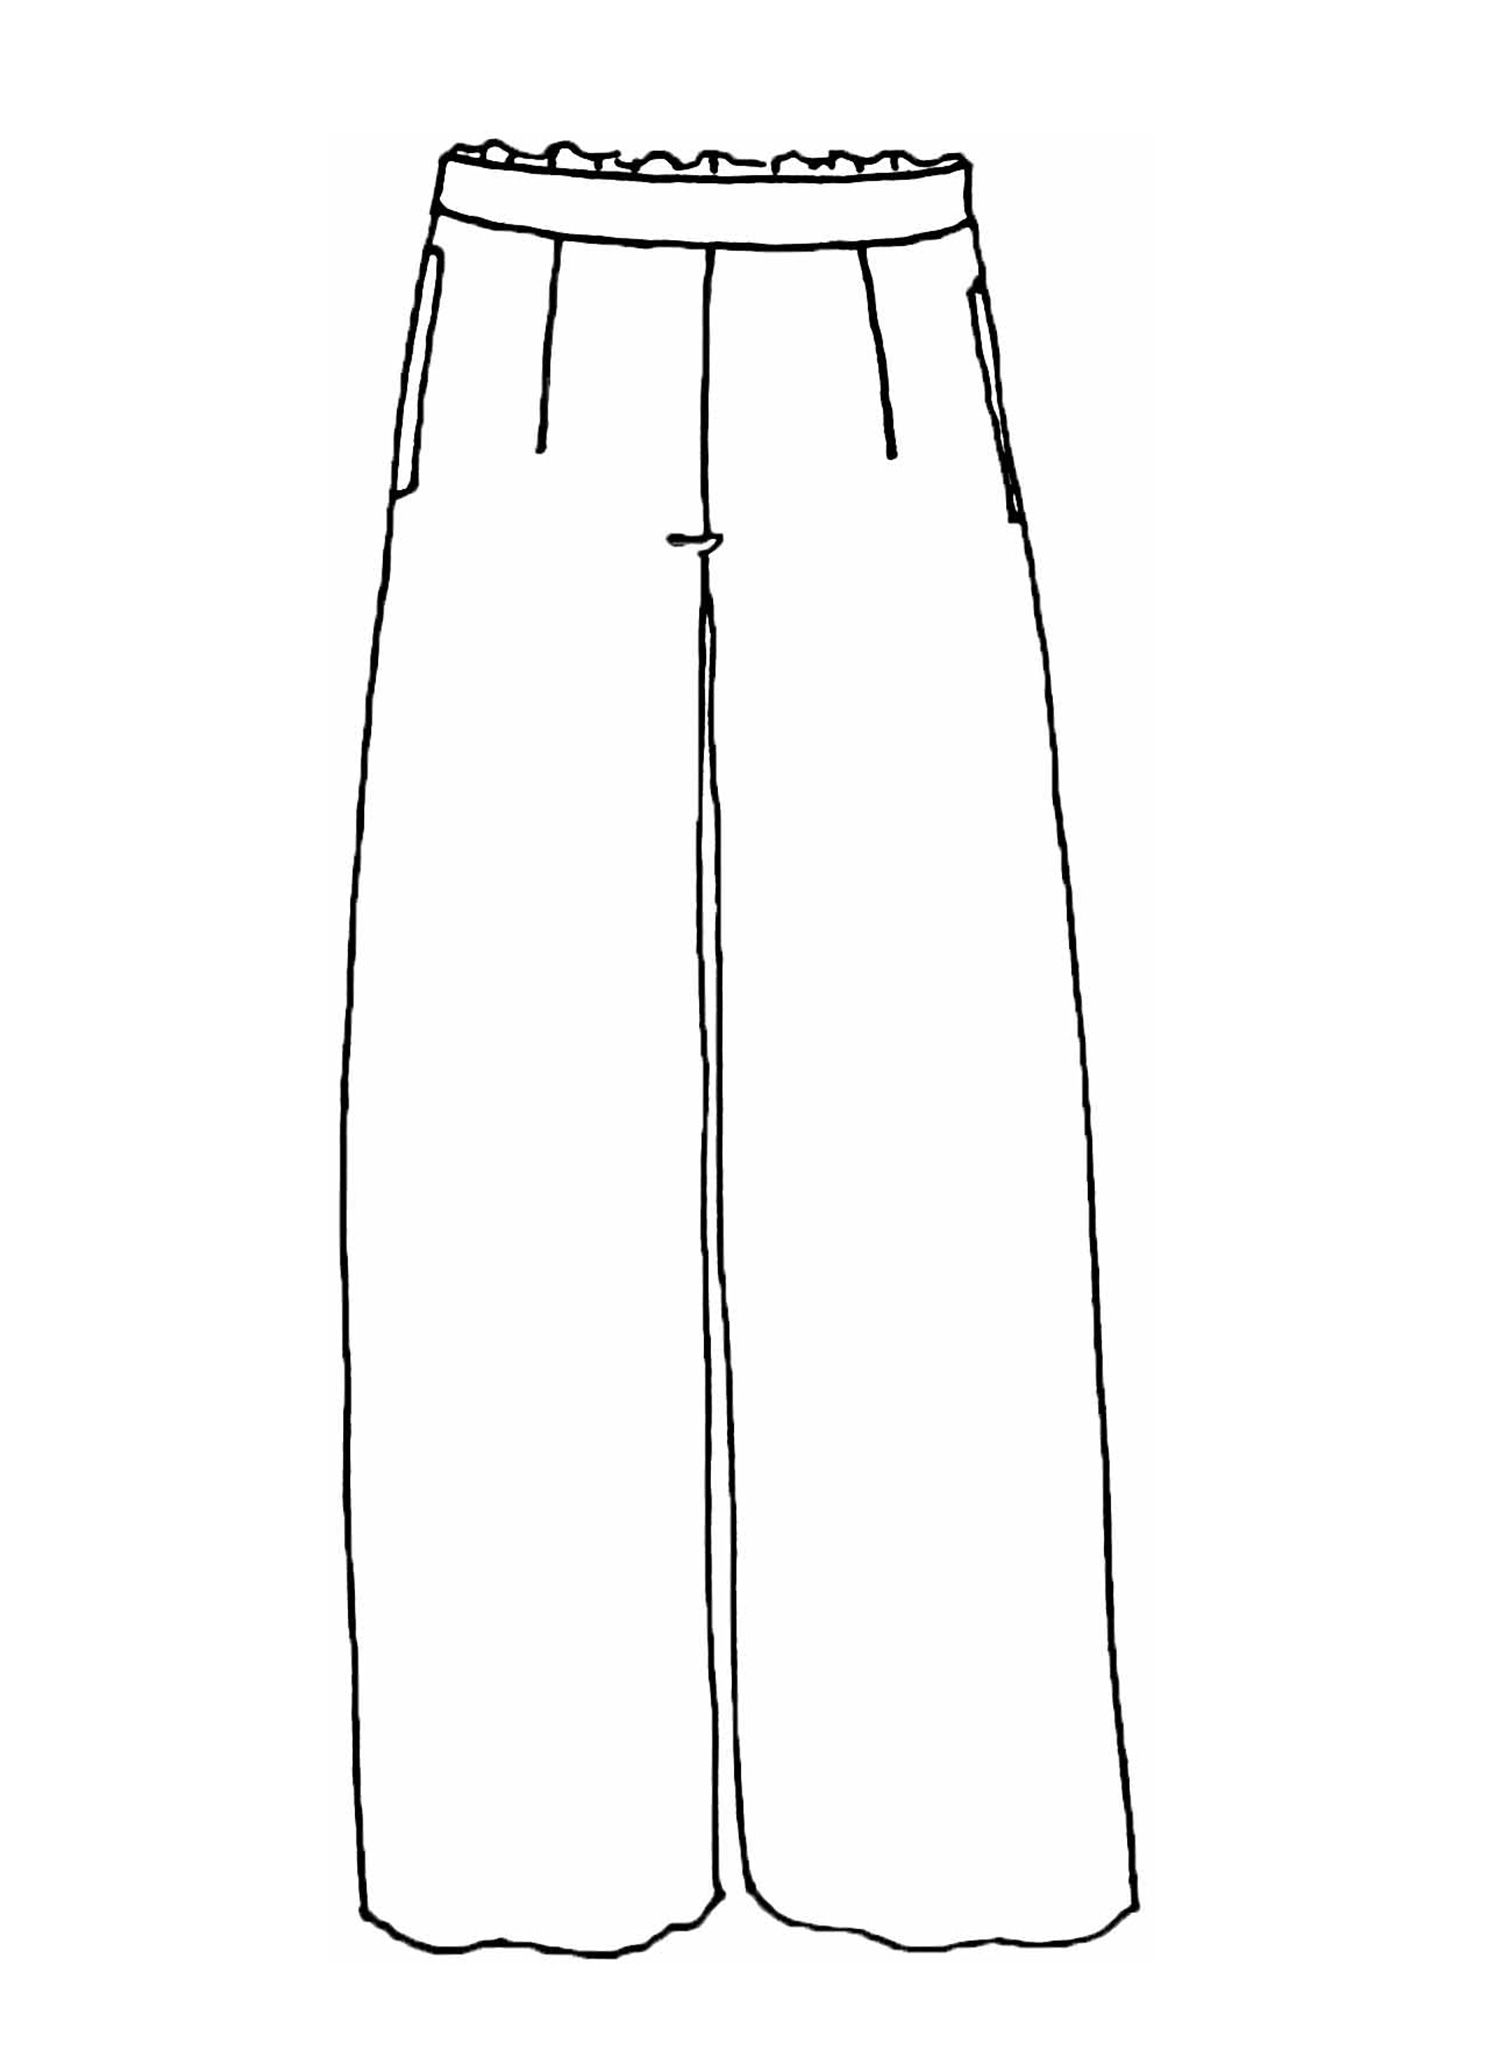 Complete Pant sketch image